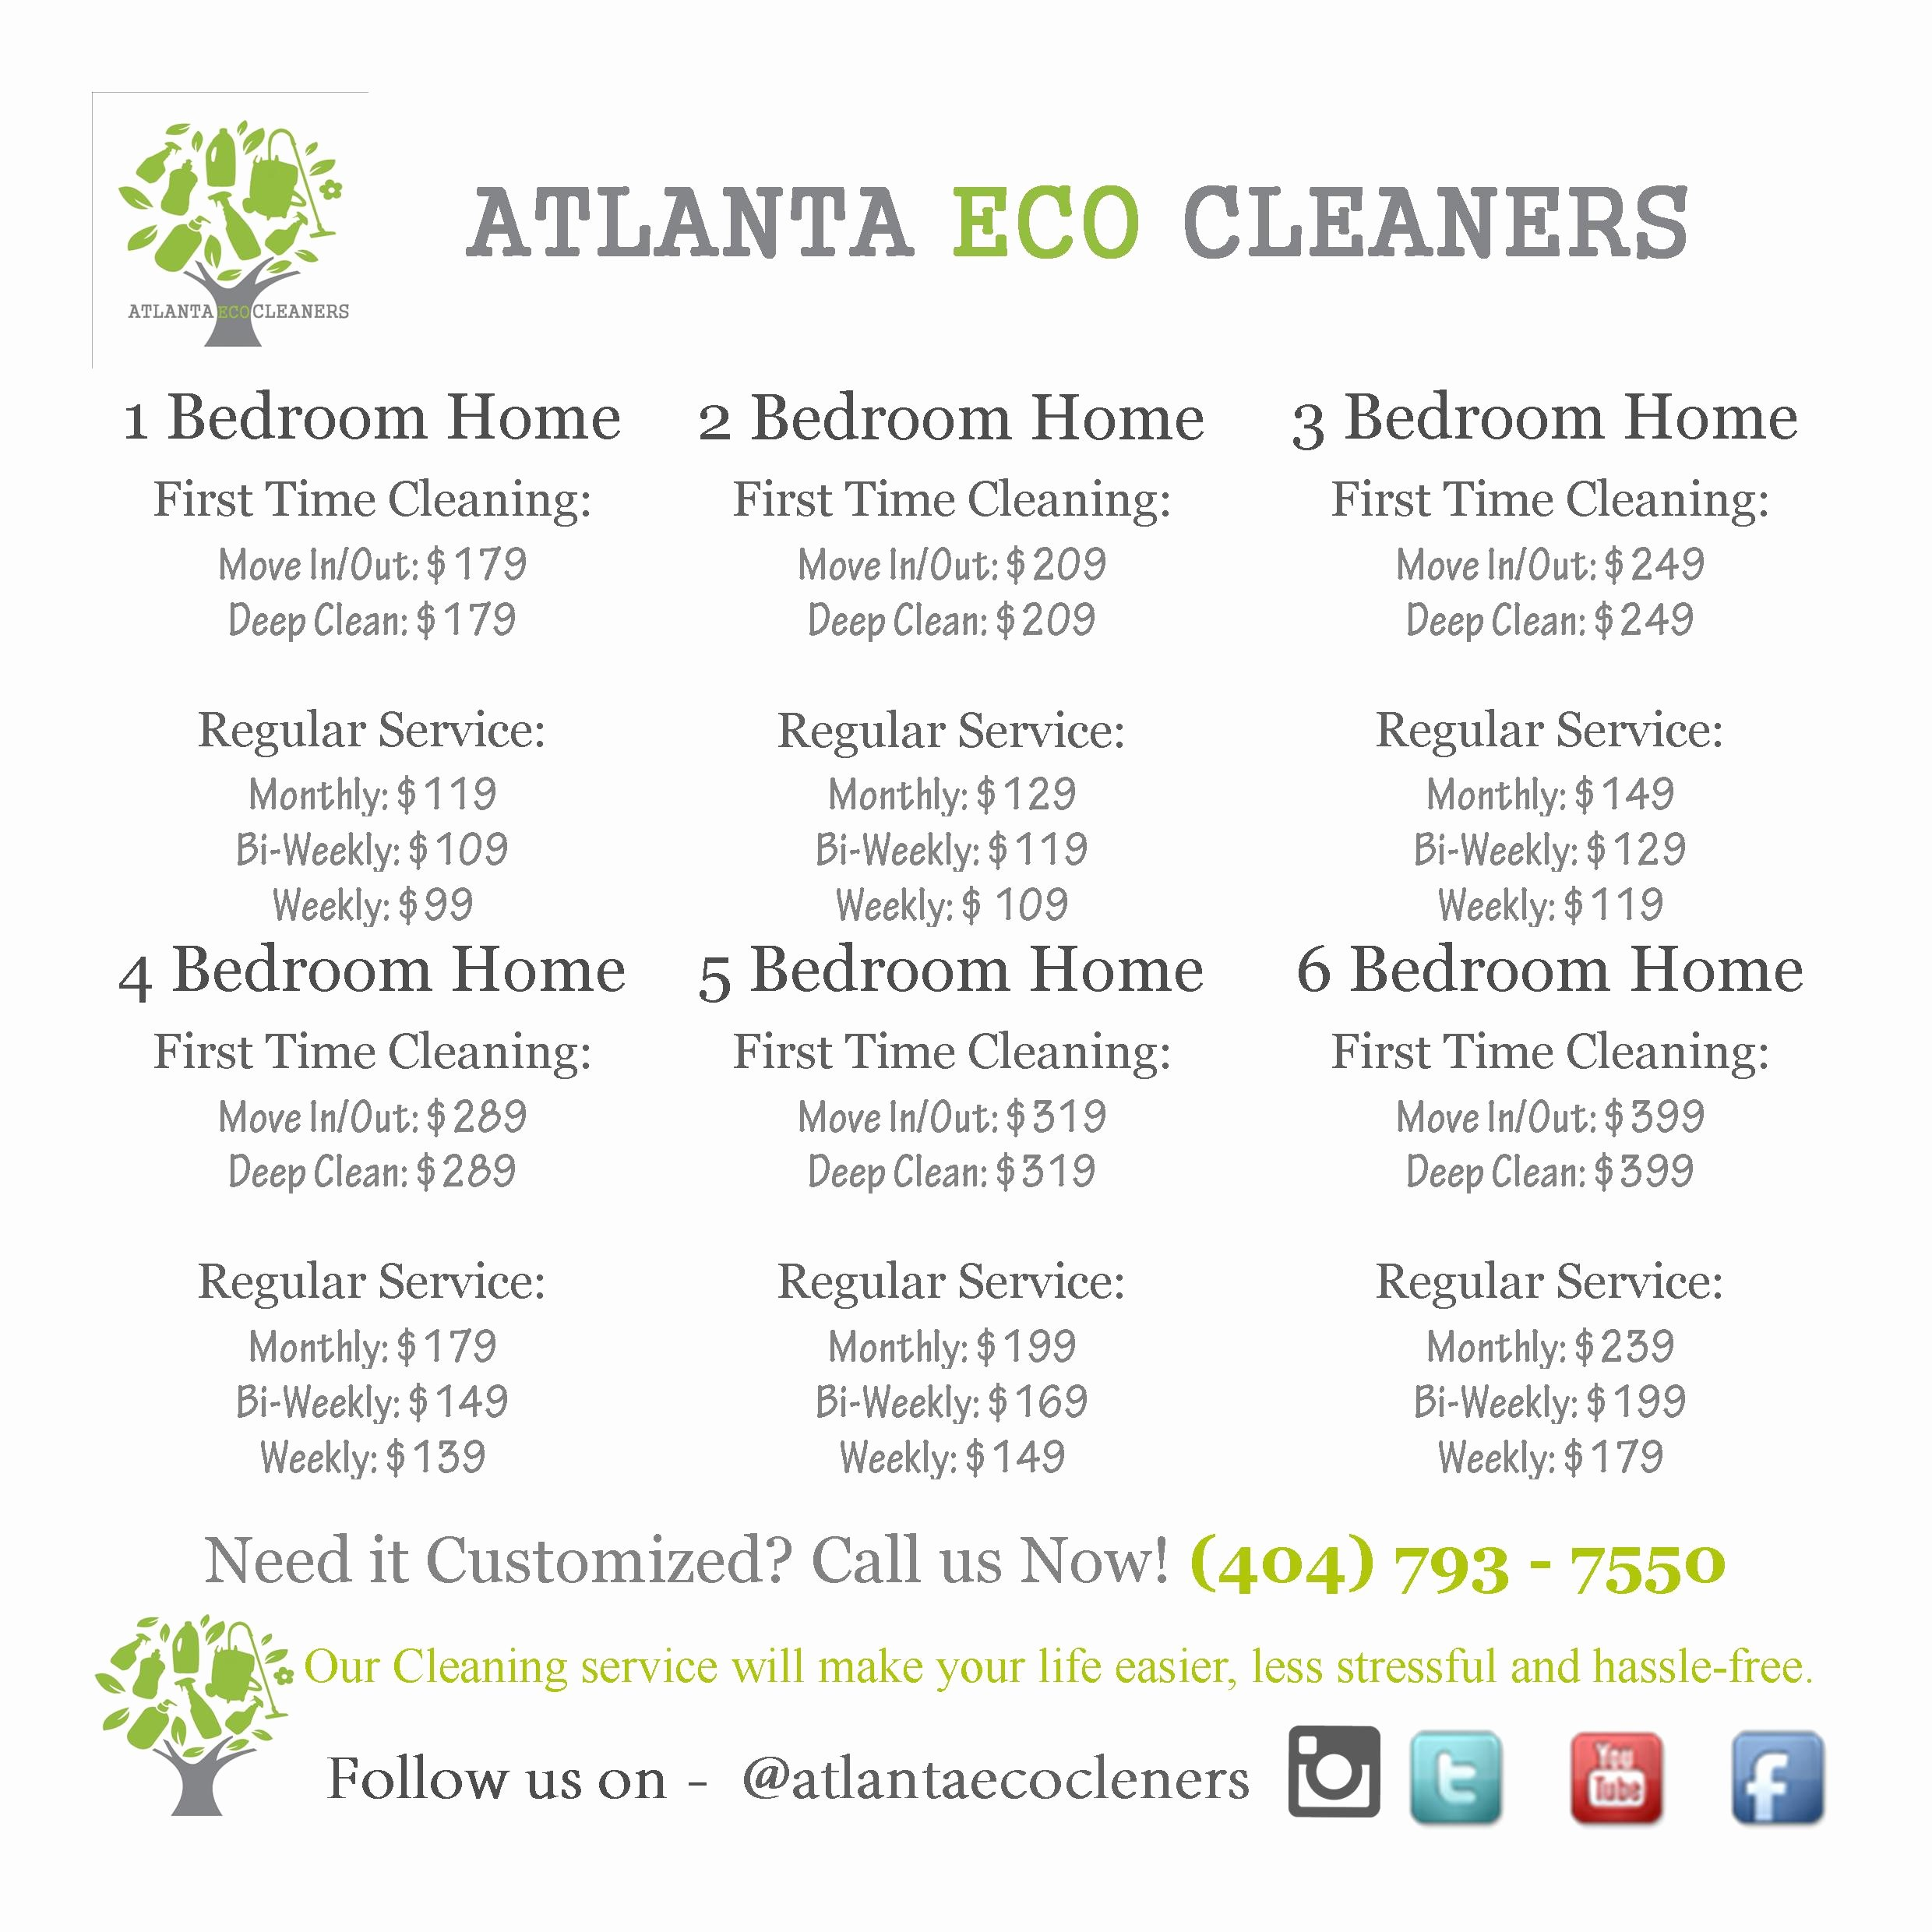 Cleaning Services Price List Template Elegant House Cleaning Prices atlanta Eco Cleaners Premier House